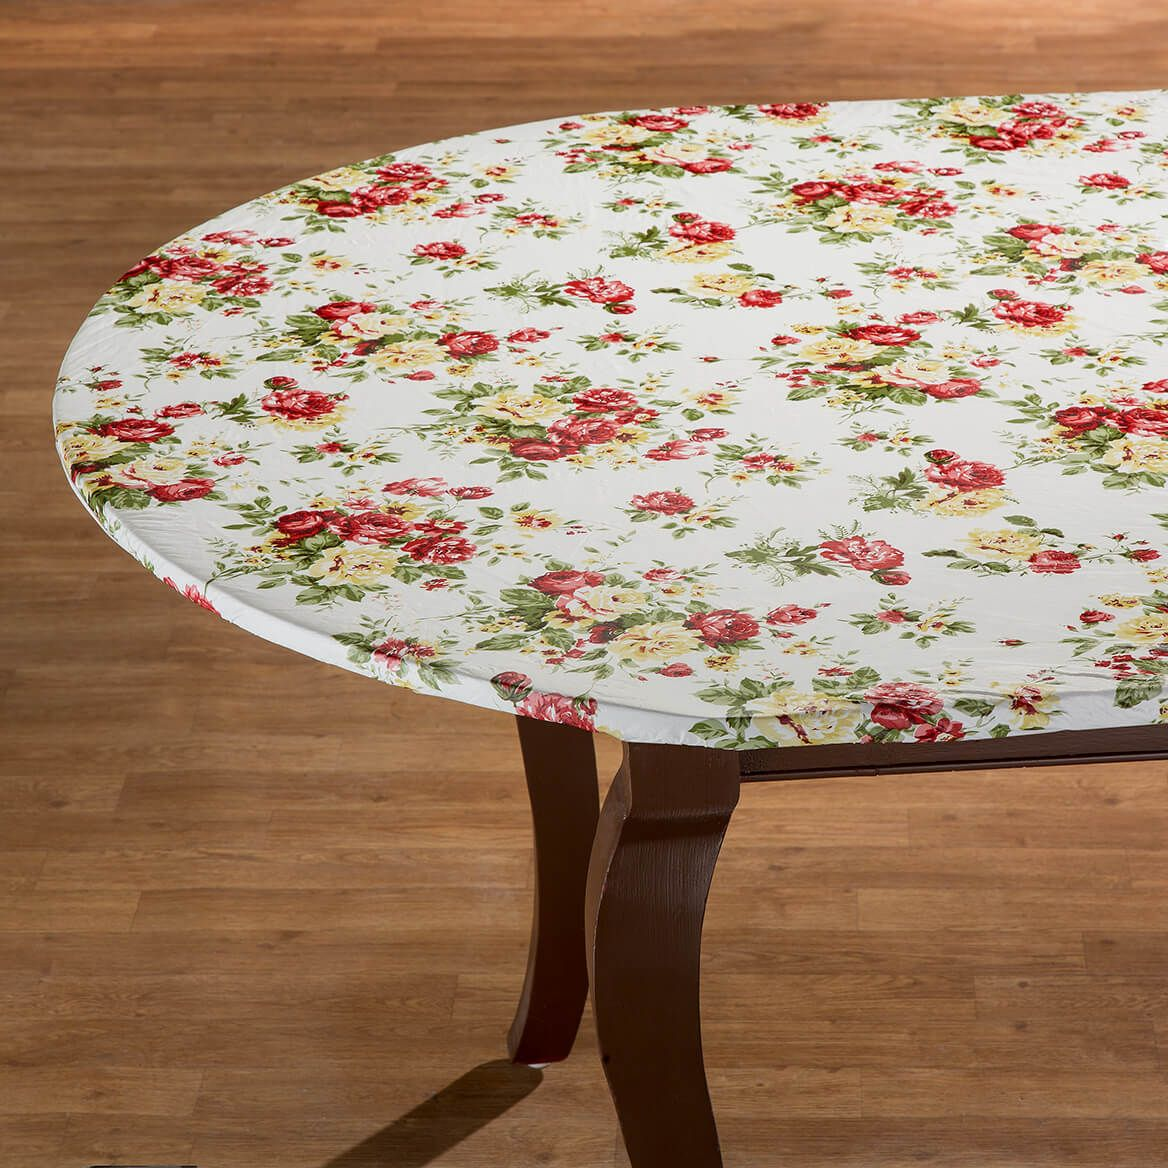 Country Rose Elasctized Vinyl Table Cover by Chef's Pride-368835